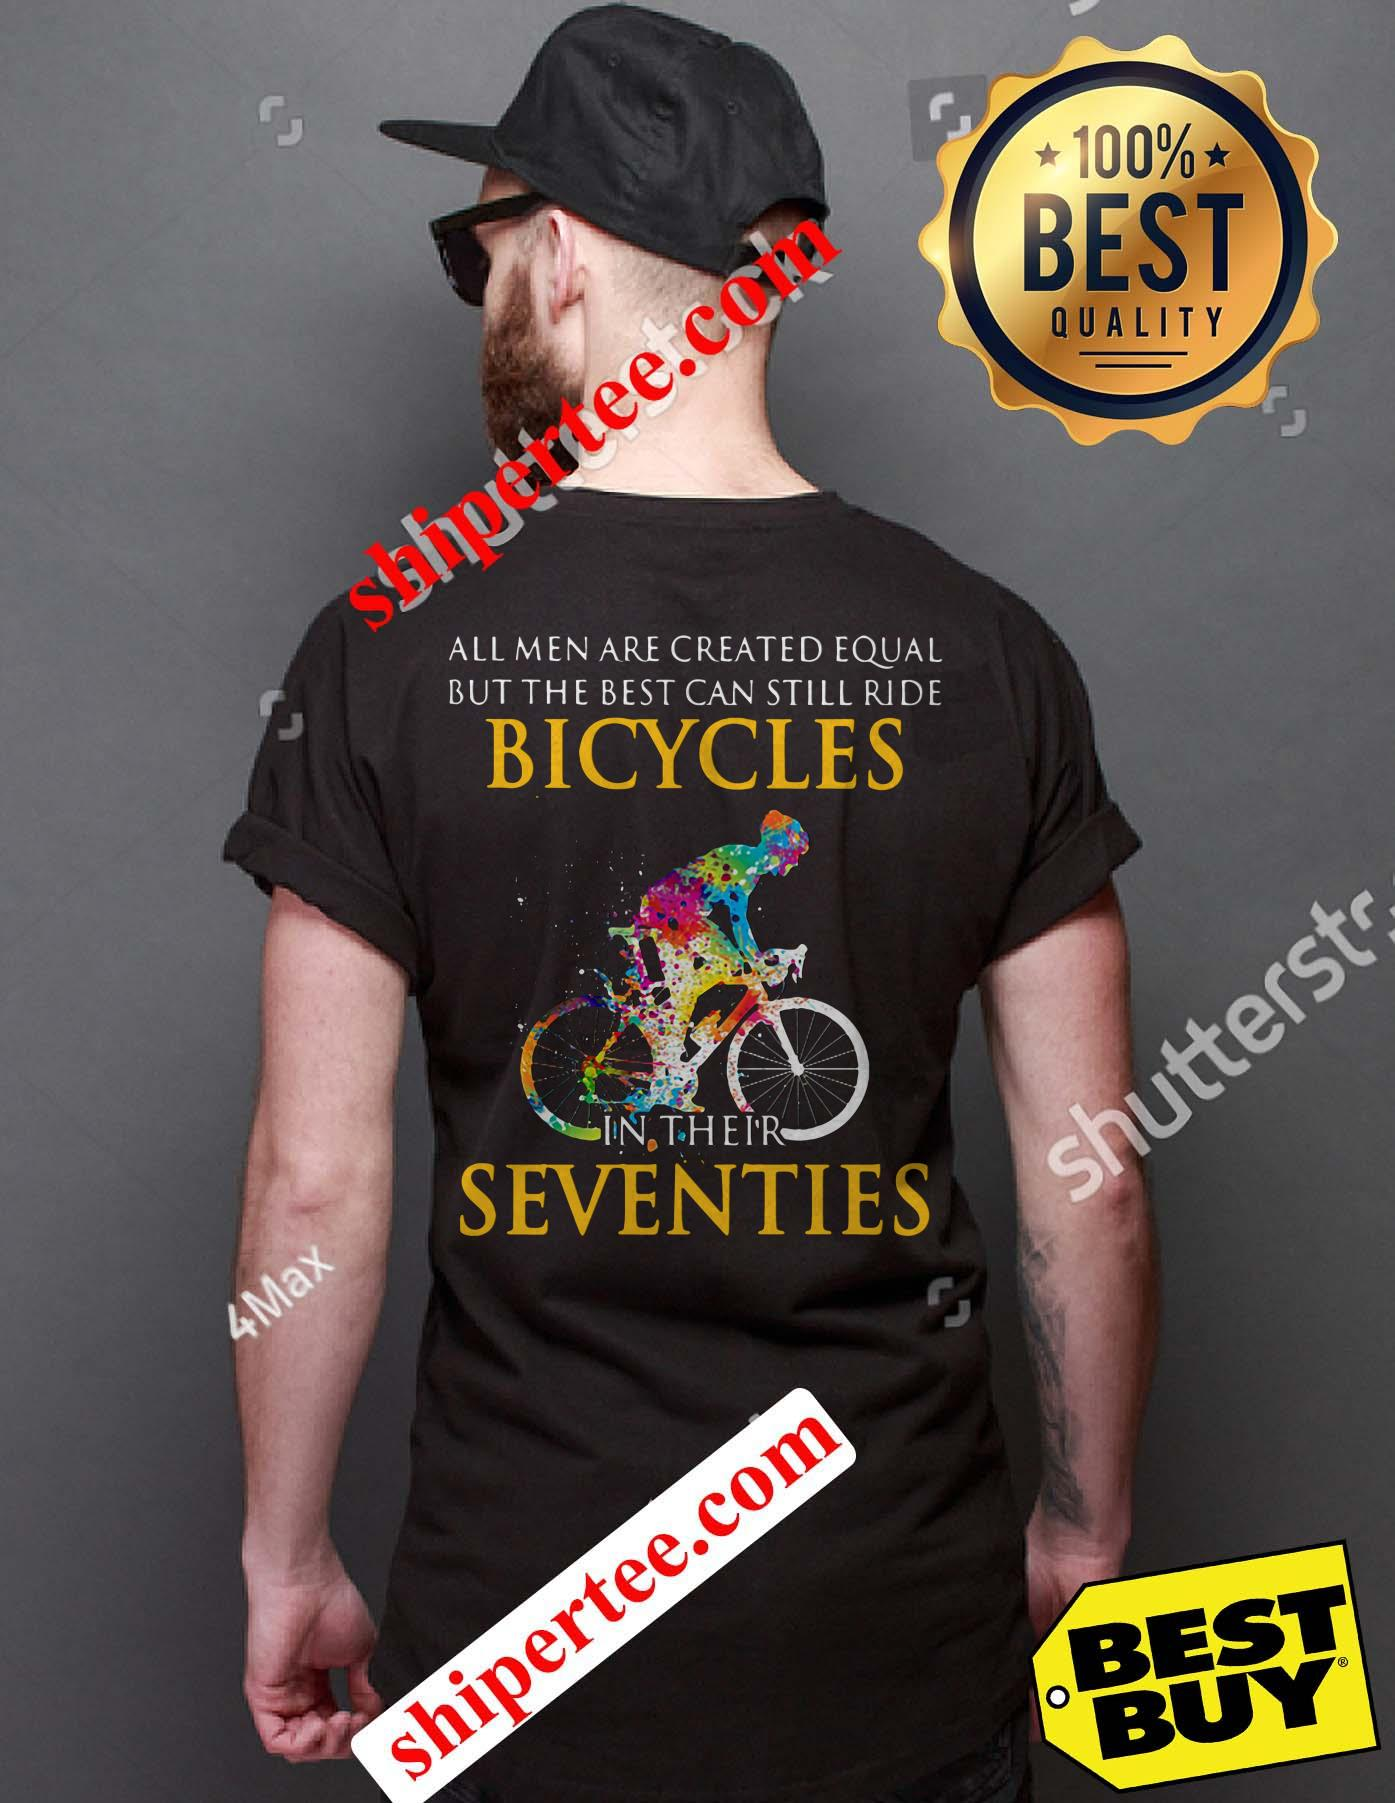 All men are created equal but only the best can still ride bicycles shirt